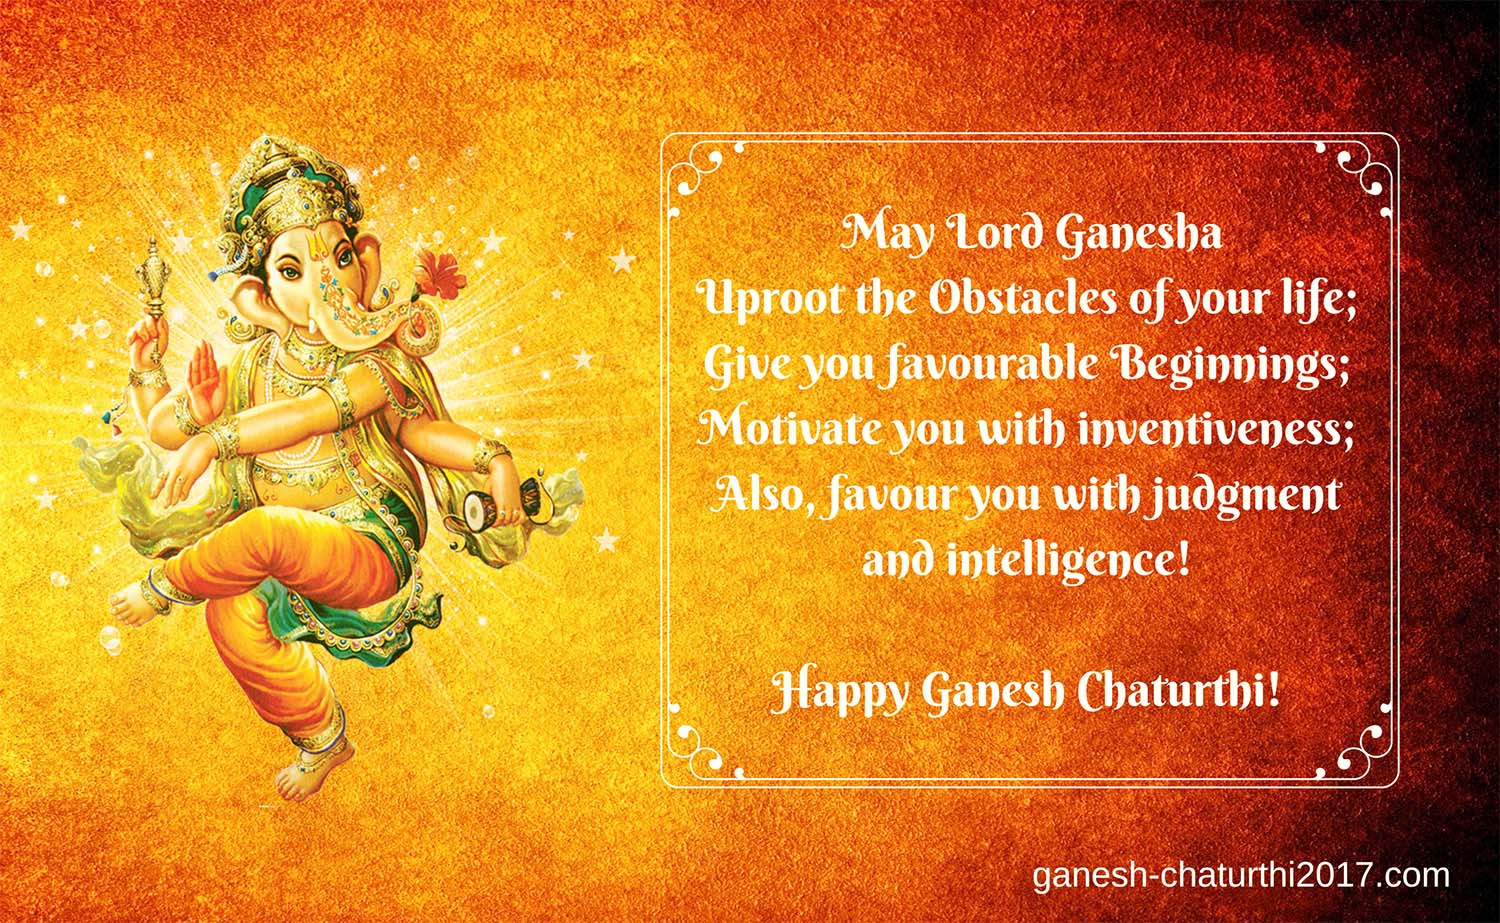 Ganesh Chaturthi Images with Message